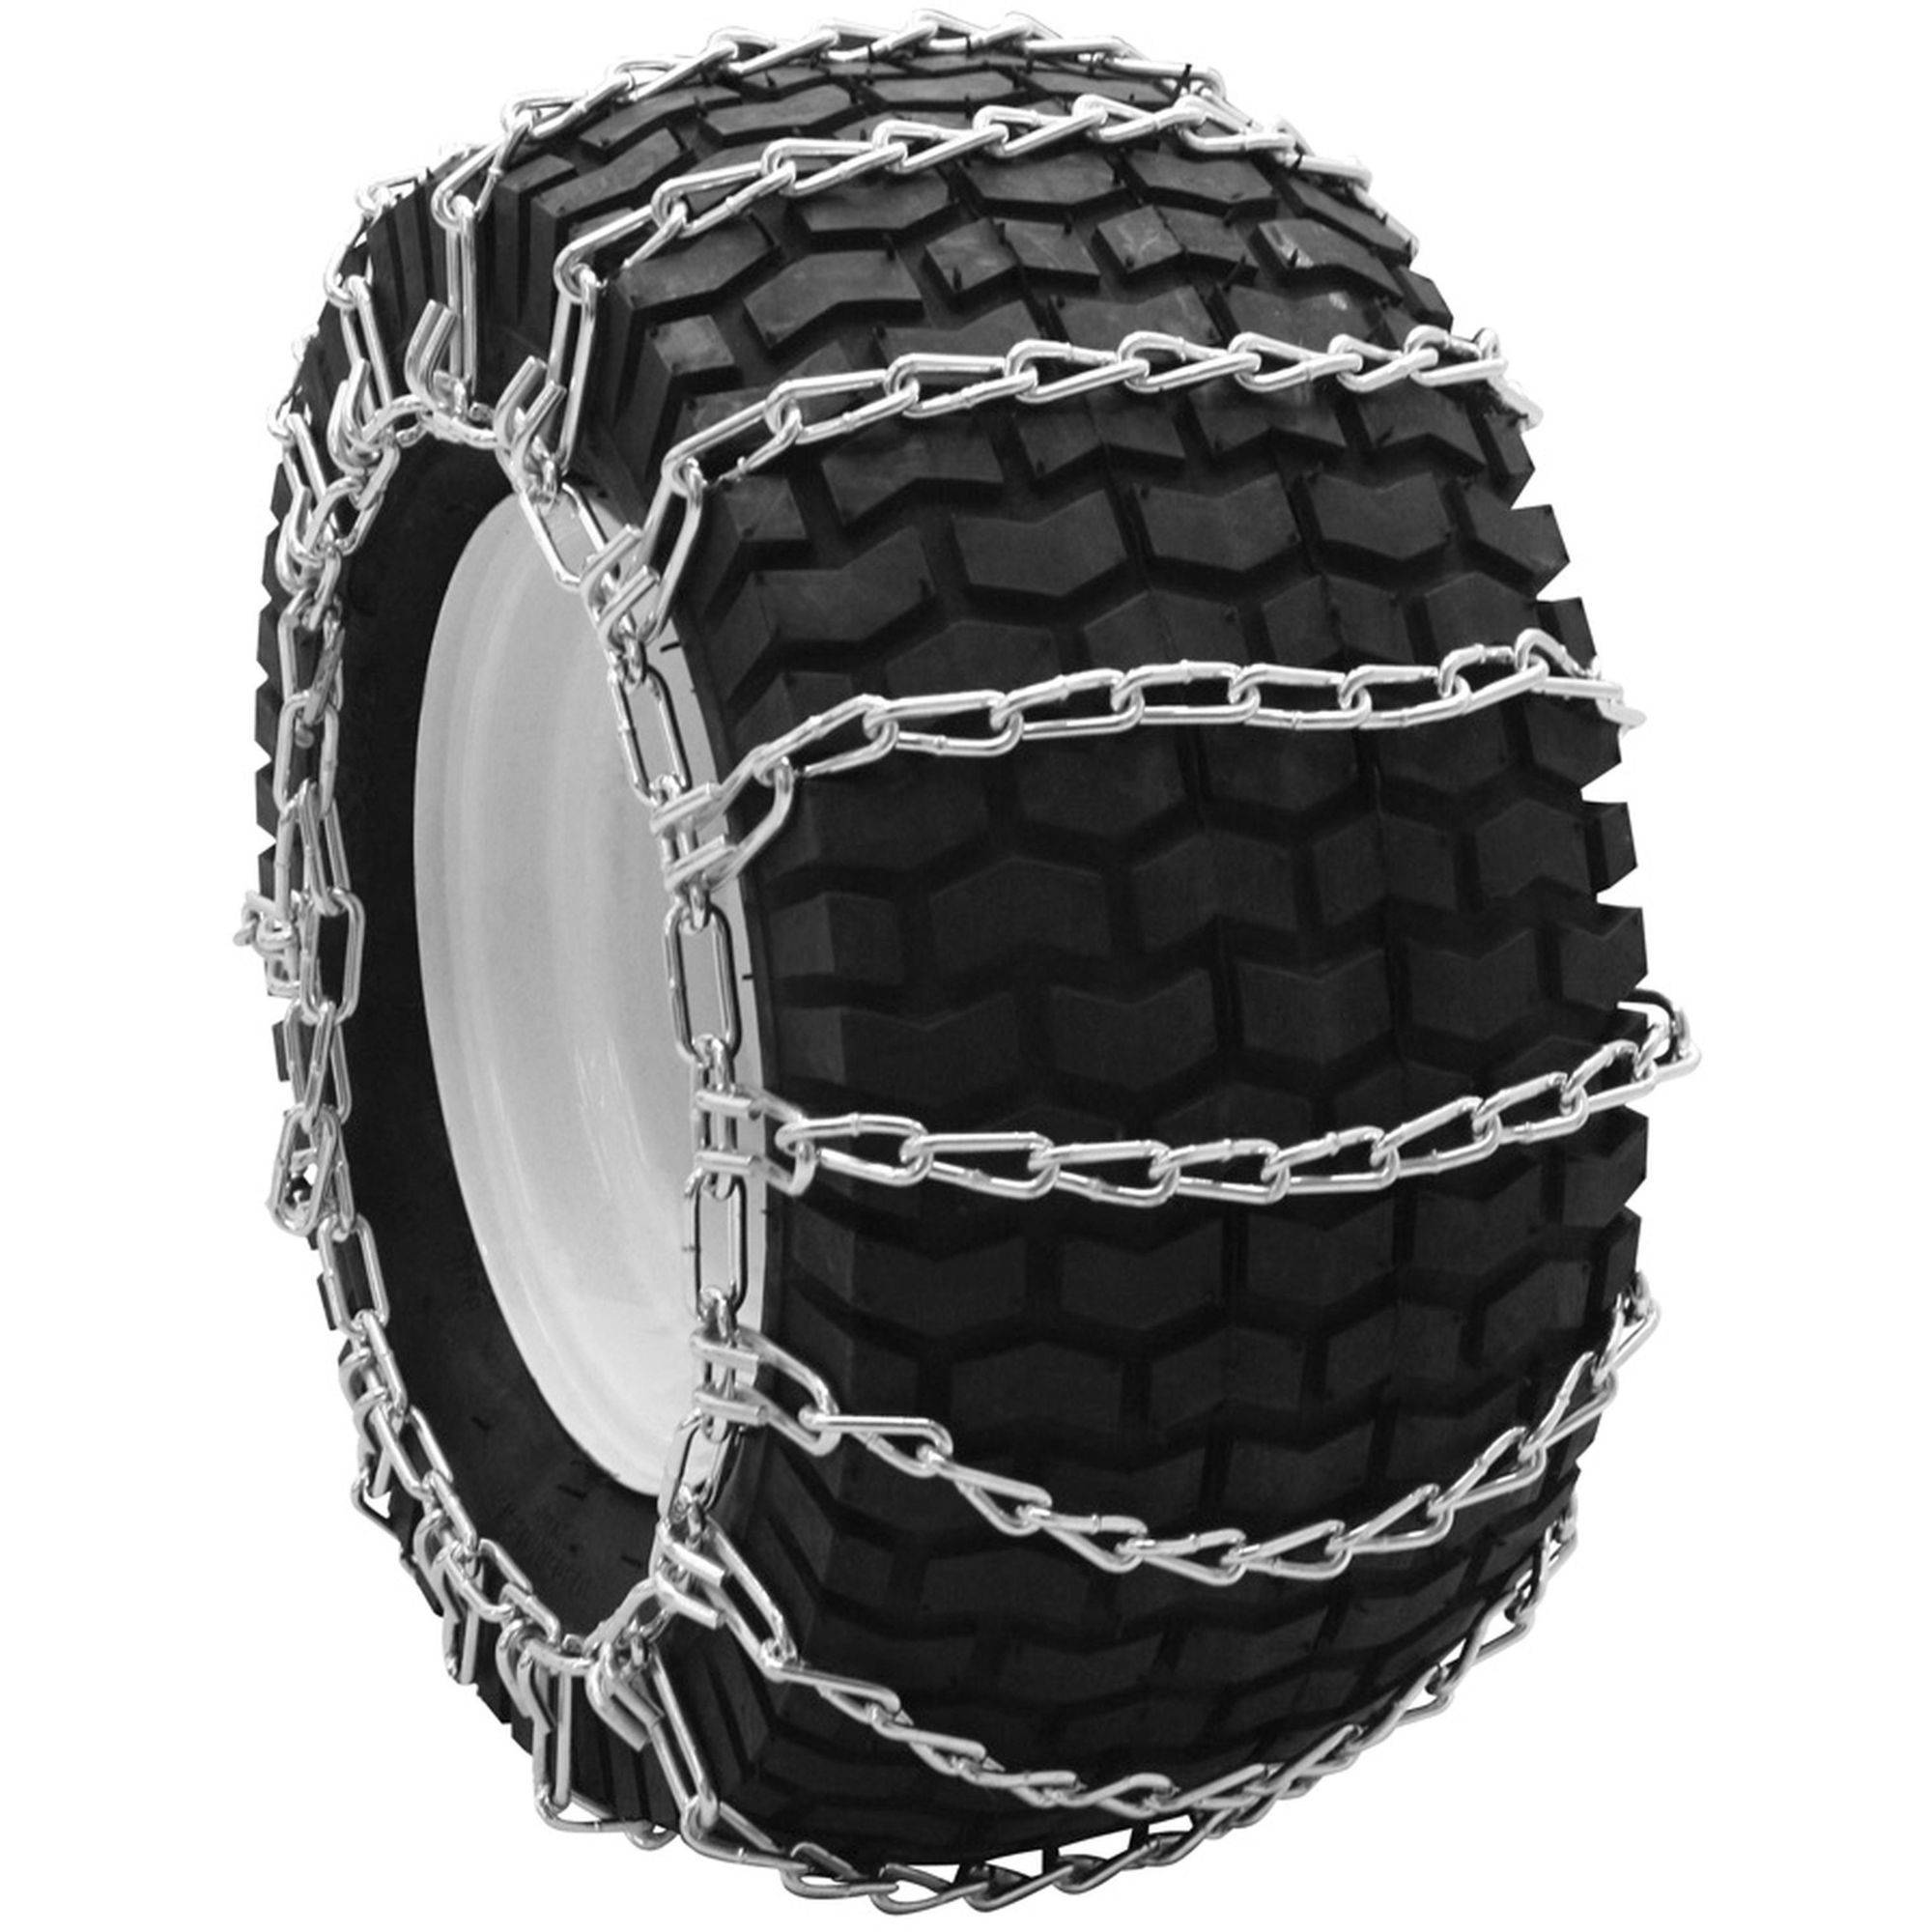 Snowblower Tire Chains, 15X5.00X6 by Peerless Chain Company